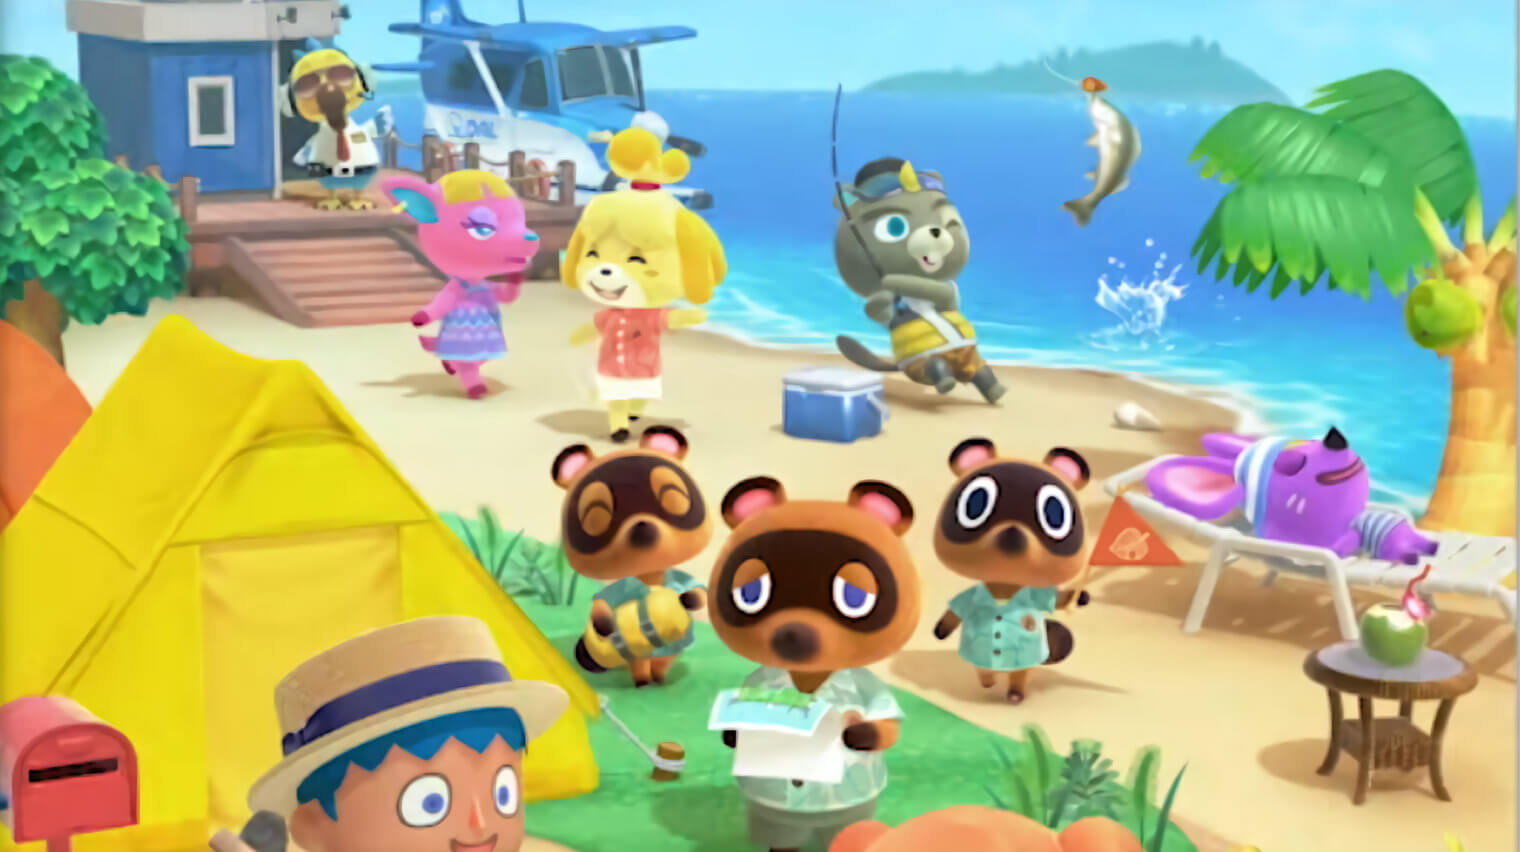 animal crossing new horizons datamine shows randomly receive art mail from villagers